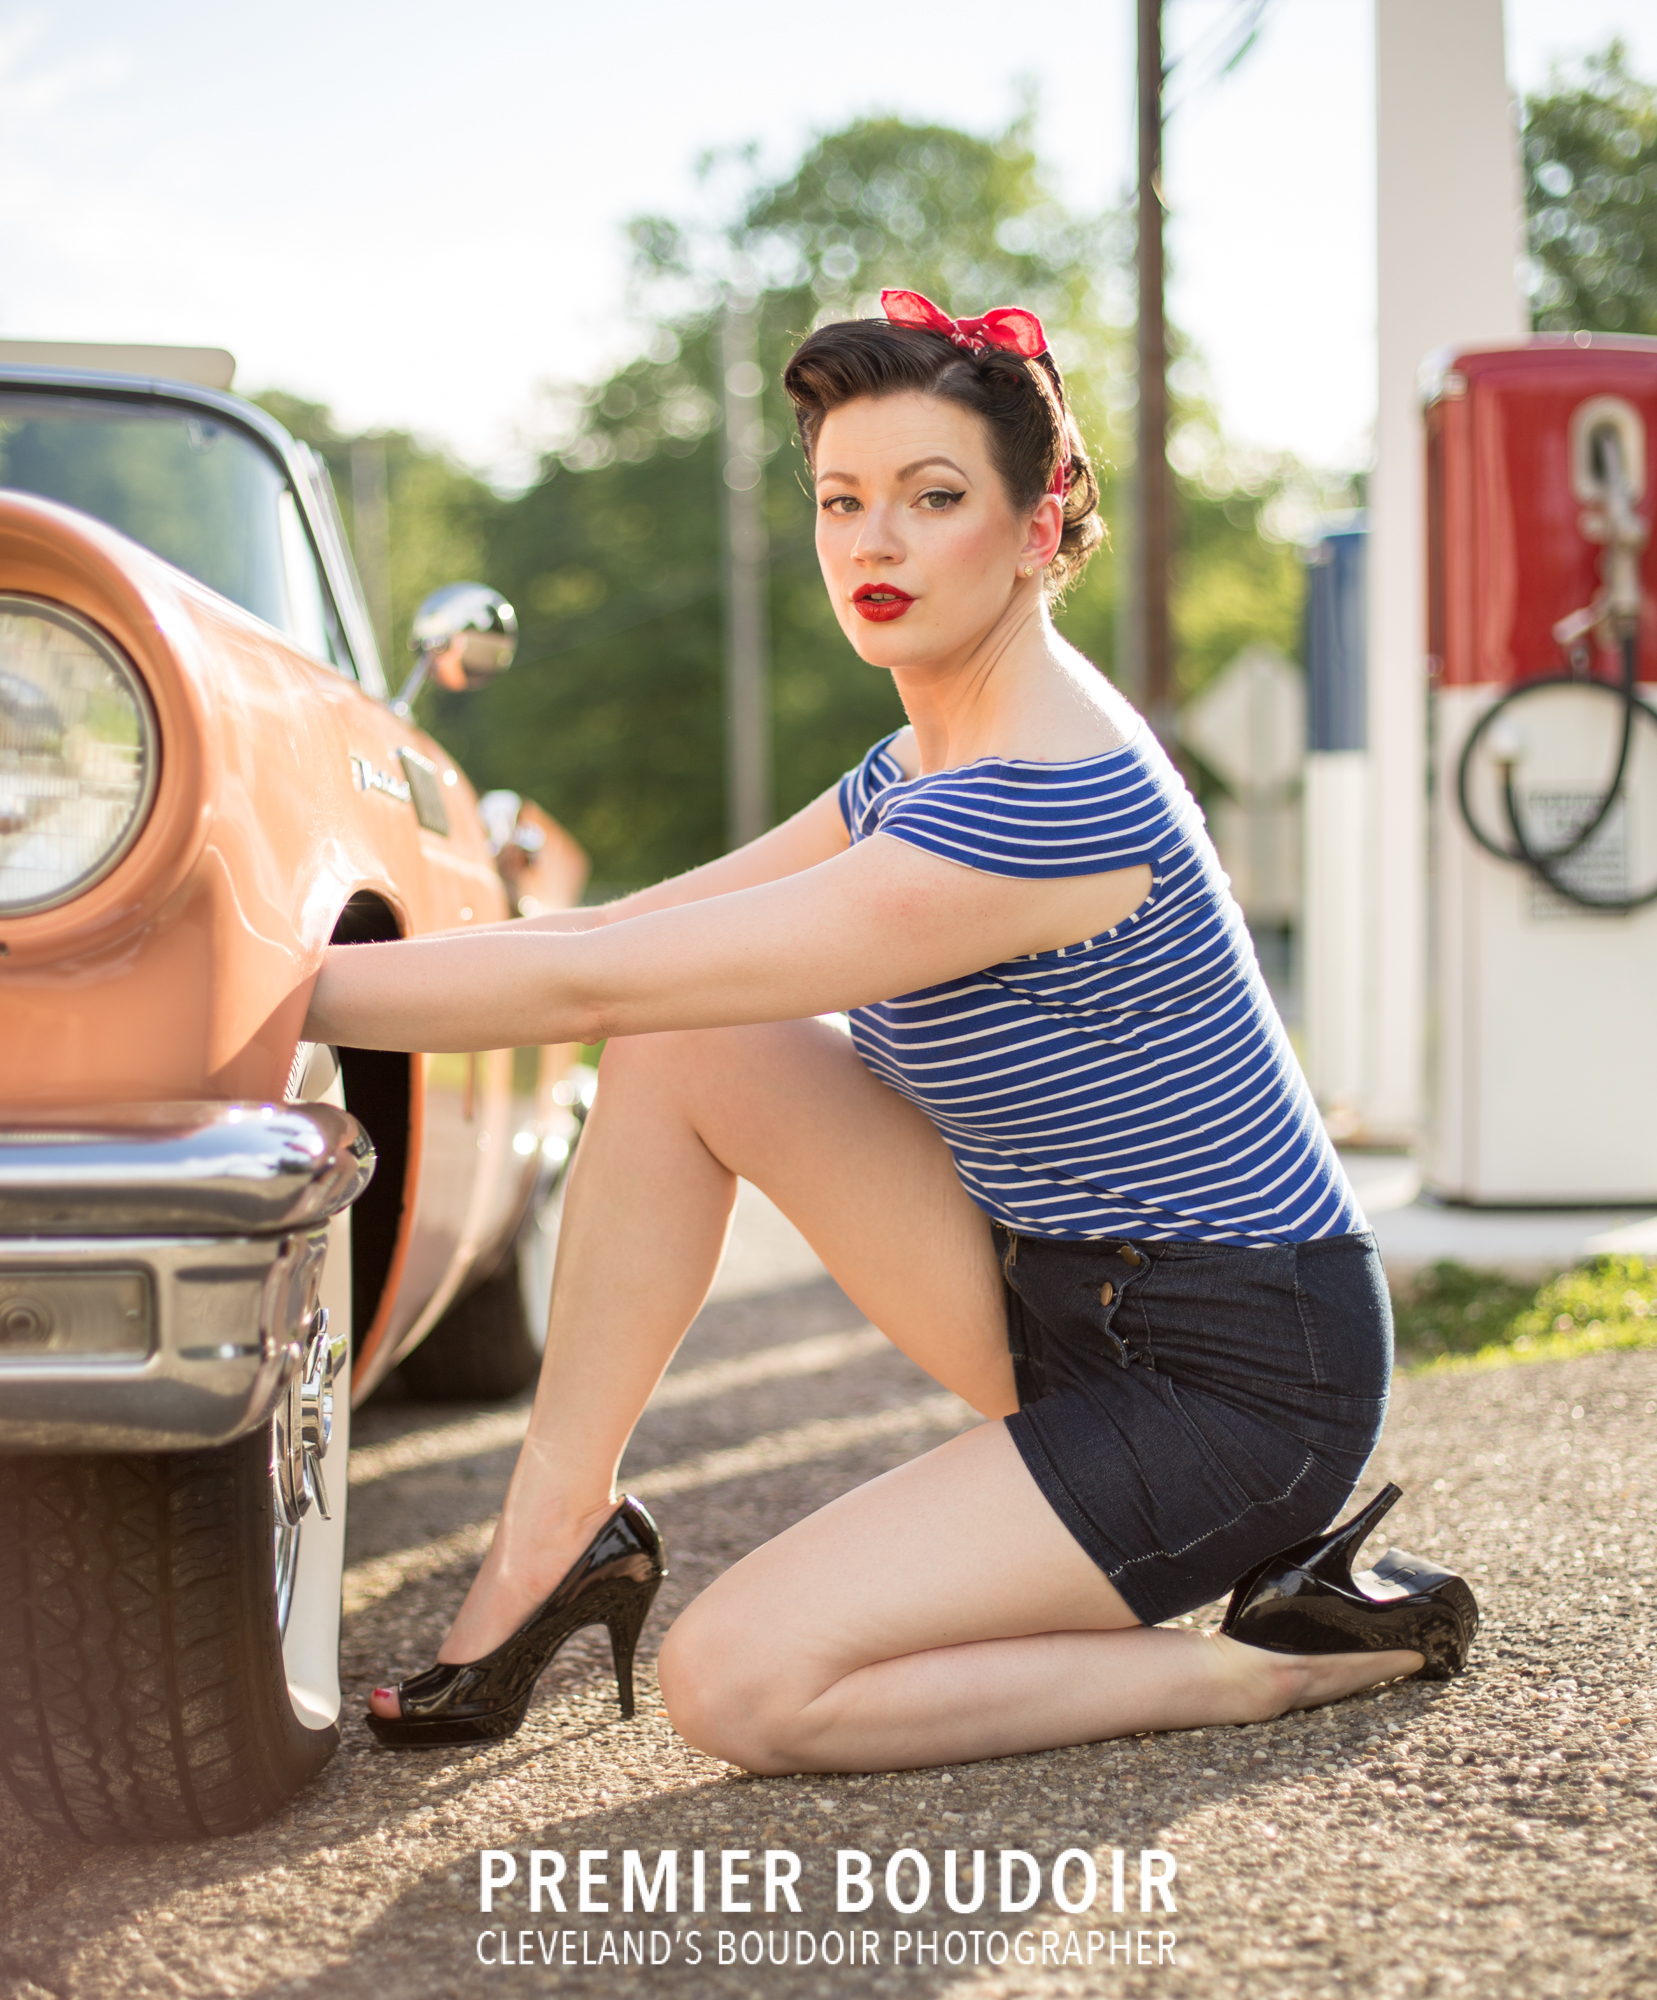 cleveland akron pinup retro boudoir classy best photography car change wheel gas station boston mills vintage